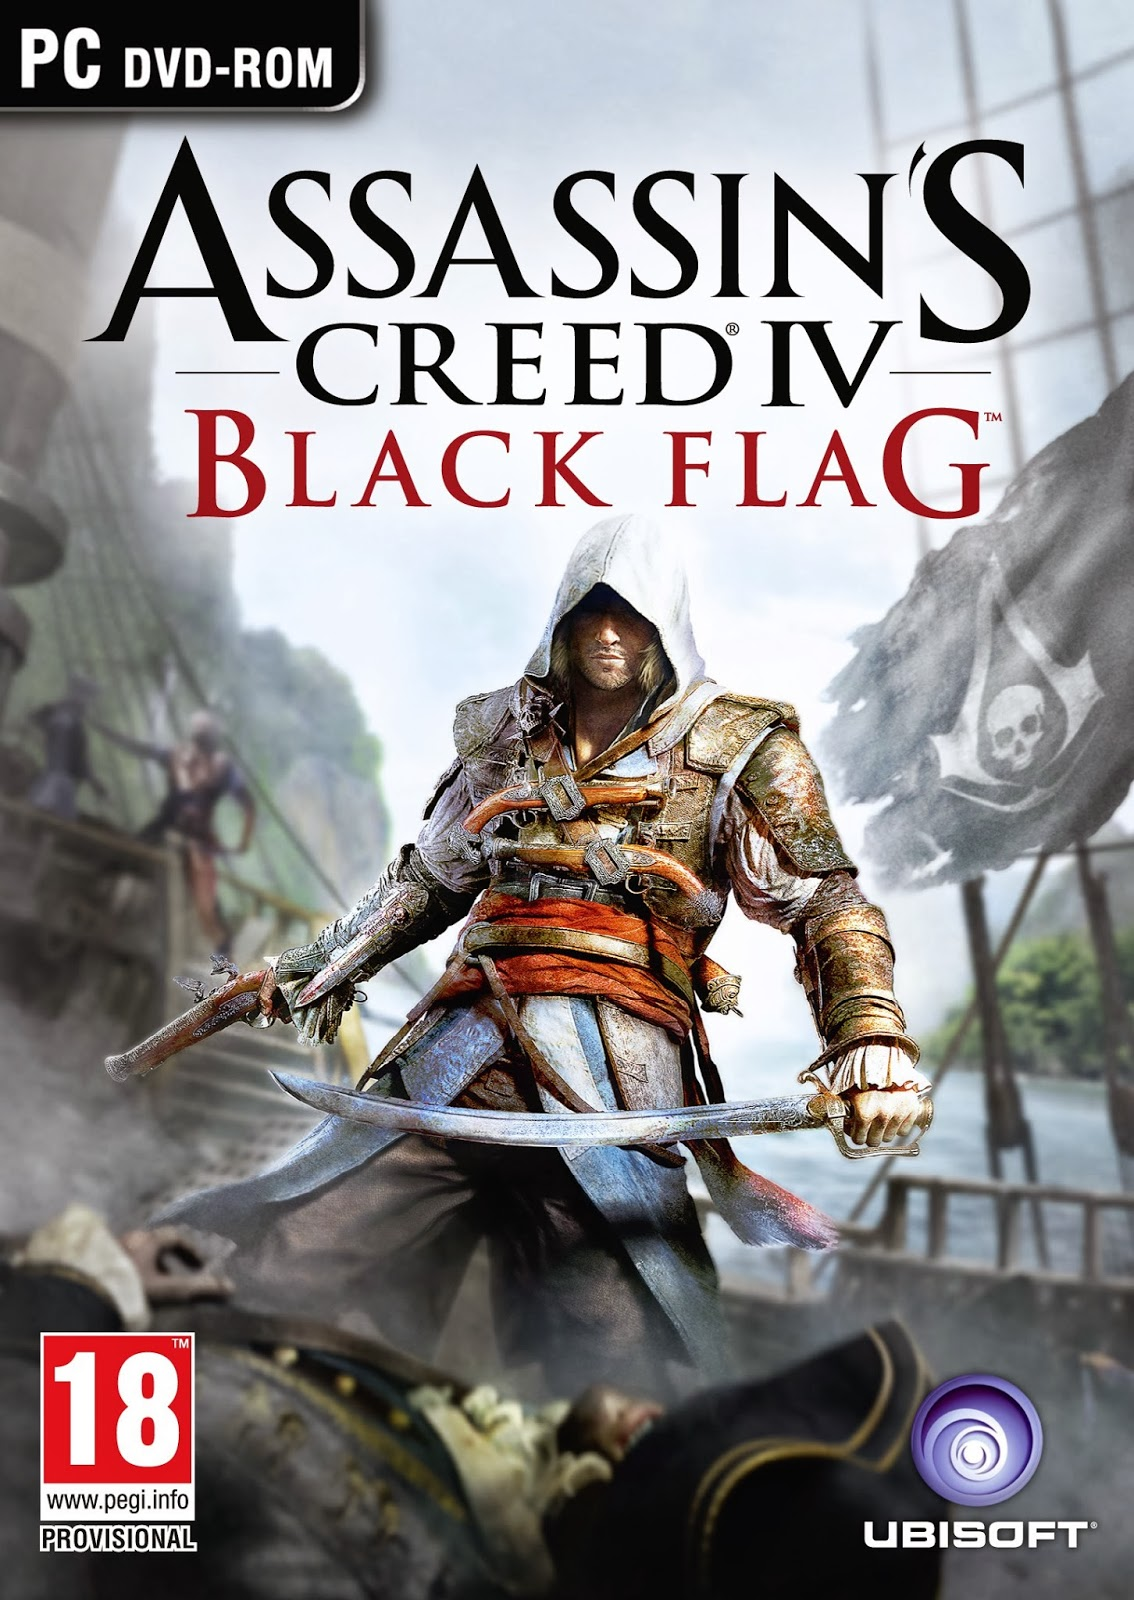 Assassin's creed black flag digital deluxe edition  best steam.